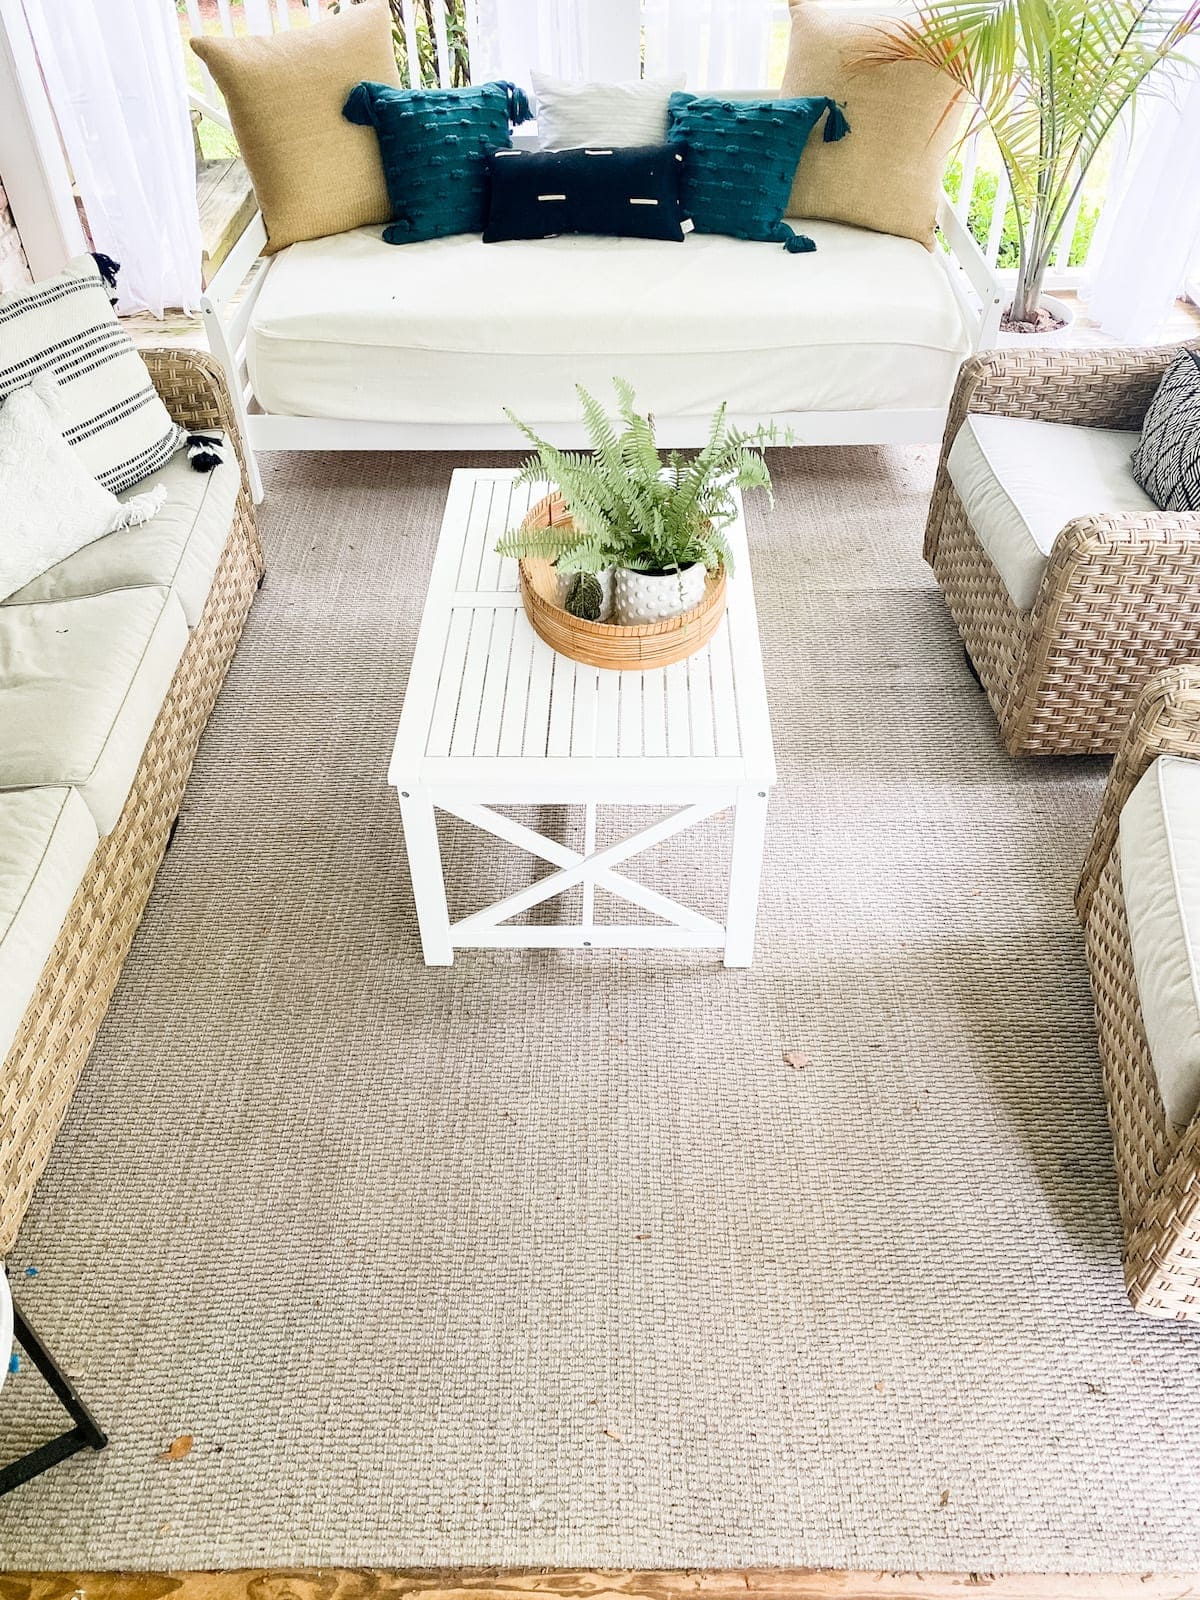 plain outdoor rug before